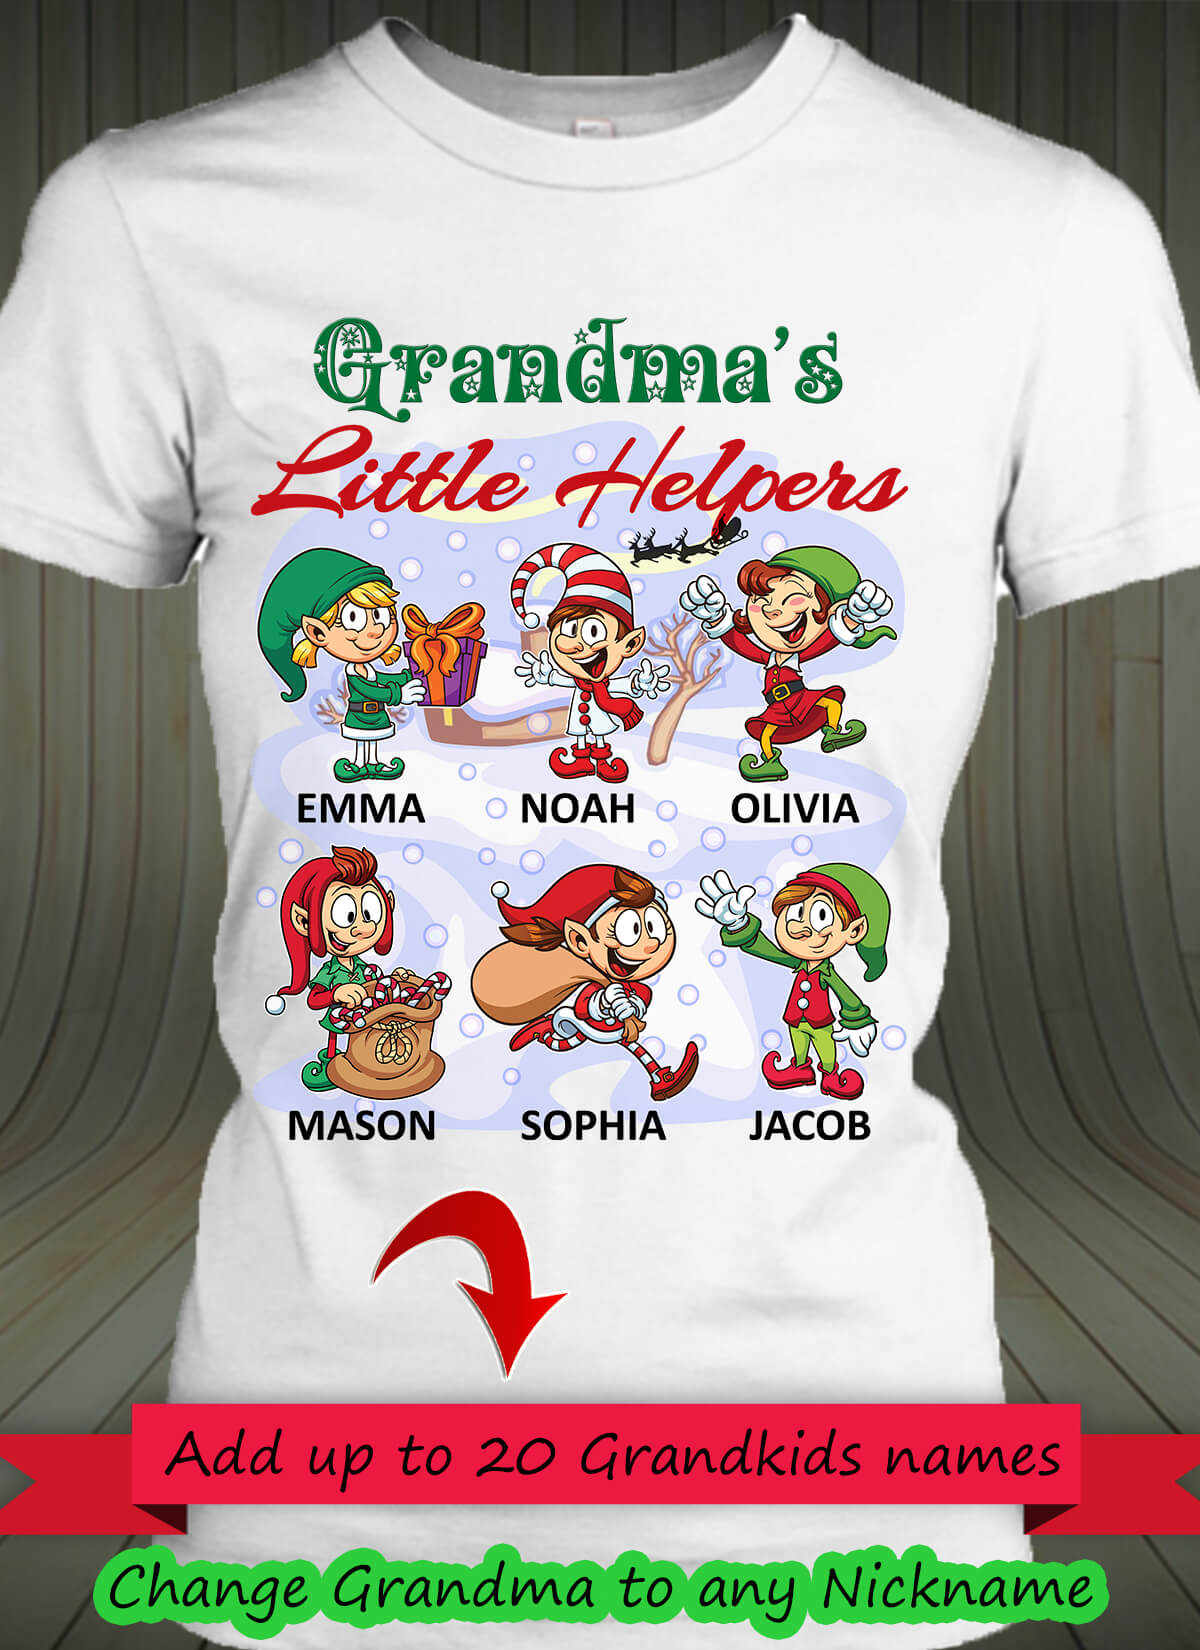 Gifts for grandma xmas